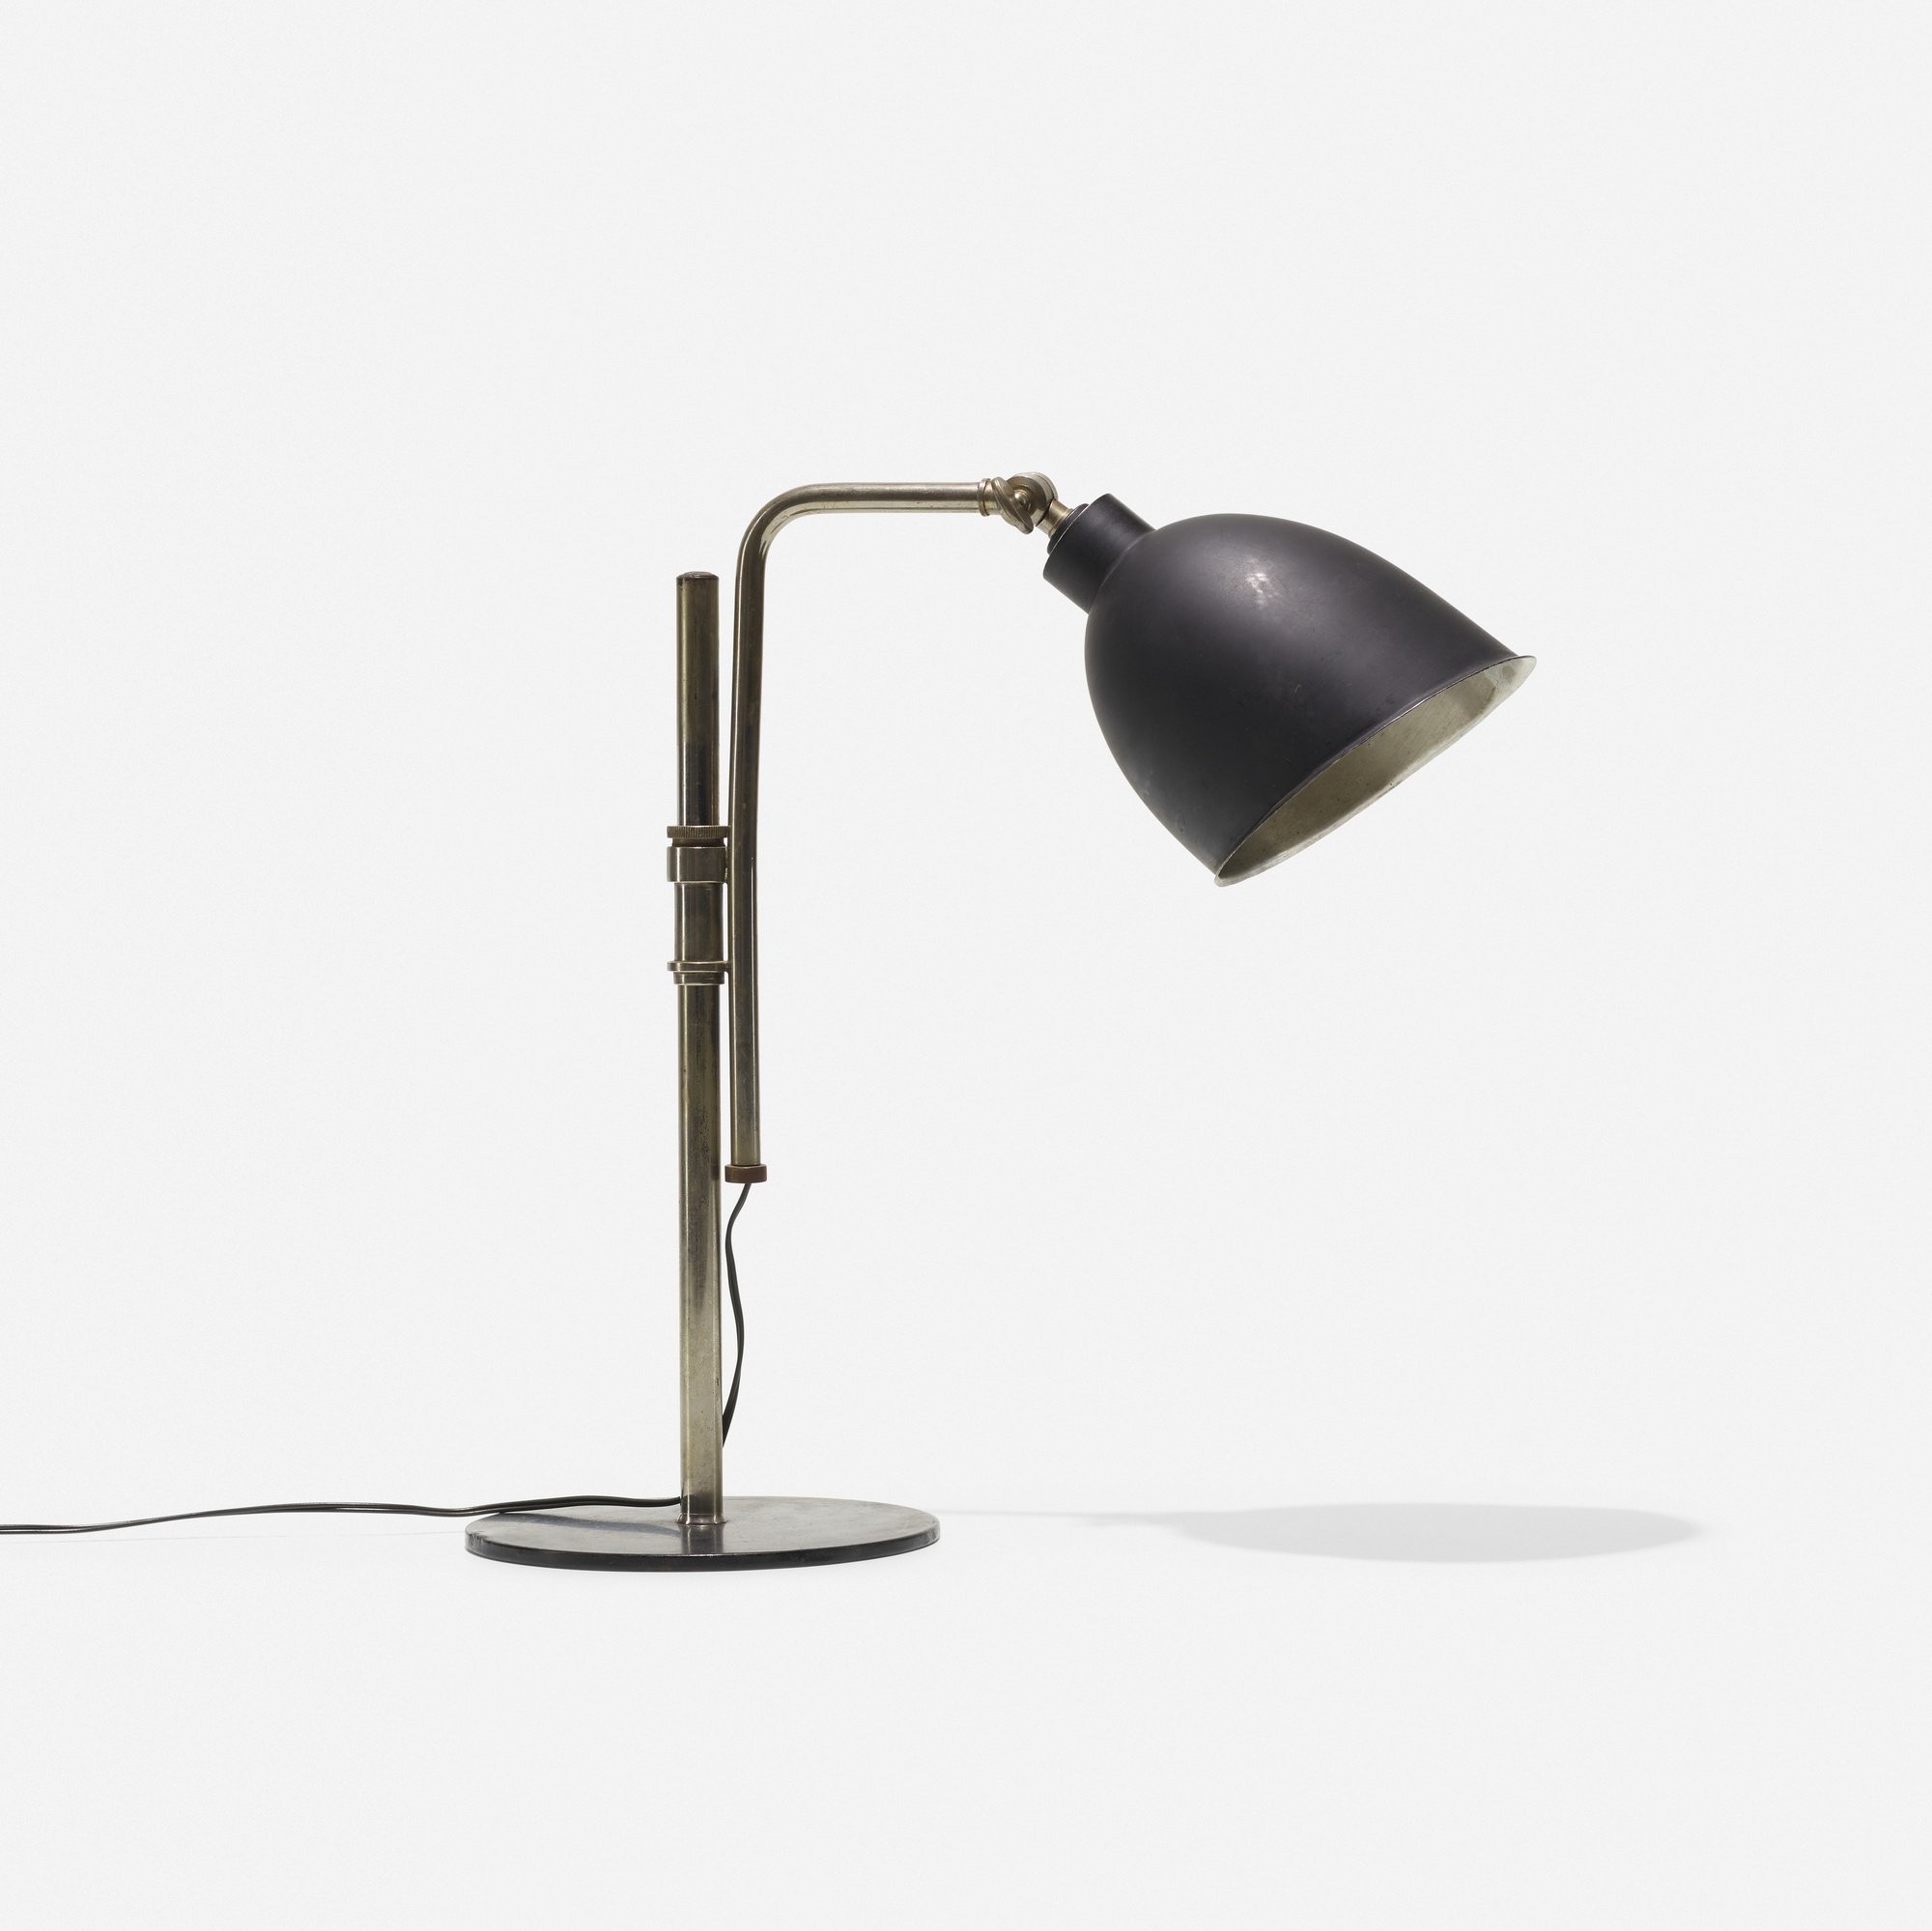 314: Christian Dell / Rondella table lamp (1 of 2)